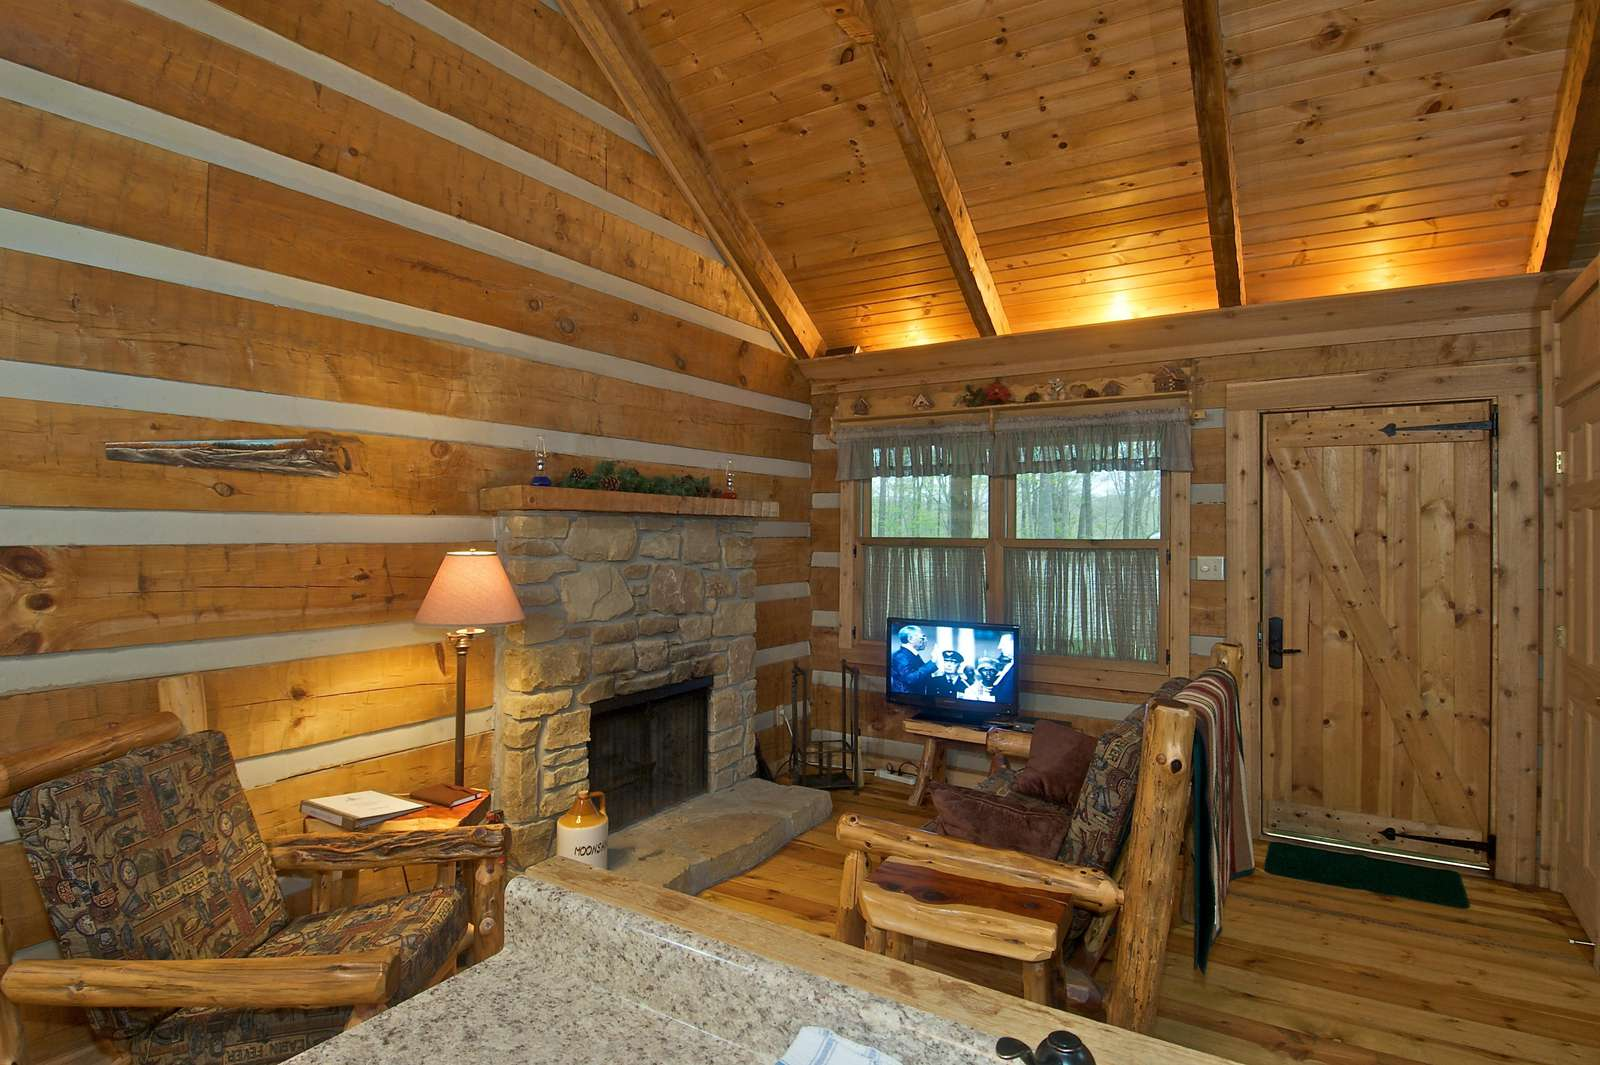 Red Cedar Log Cabin – Brown County Log Cabins on log cabin double wide mobile homes, log cabin wall decorations, log cabin color ideas, log cabin exterior shutters, log cabin room ideas, small cottage kitchen decorating ideas, unique cabin decorating ideas, log cabin bedroom furniture sets, log cabin interior decorating, log cabin bathroom, pine log ideas, log cabin bedroom construction, cabin style decorating ideas, log cabin bedroom themes, log cabin bedrooms bunk bed, log cabin with wrap around porch, log cabin plans 1 bedroom, log cabin luxury mansions, lodge bedroom ideas,